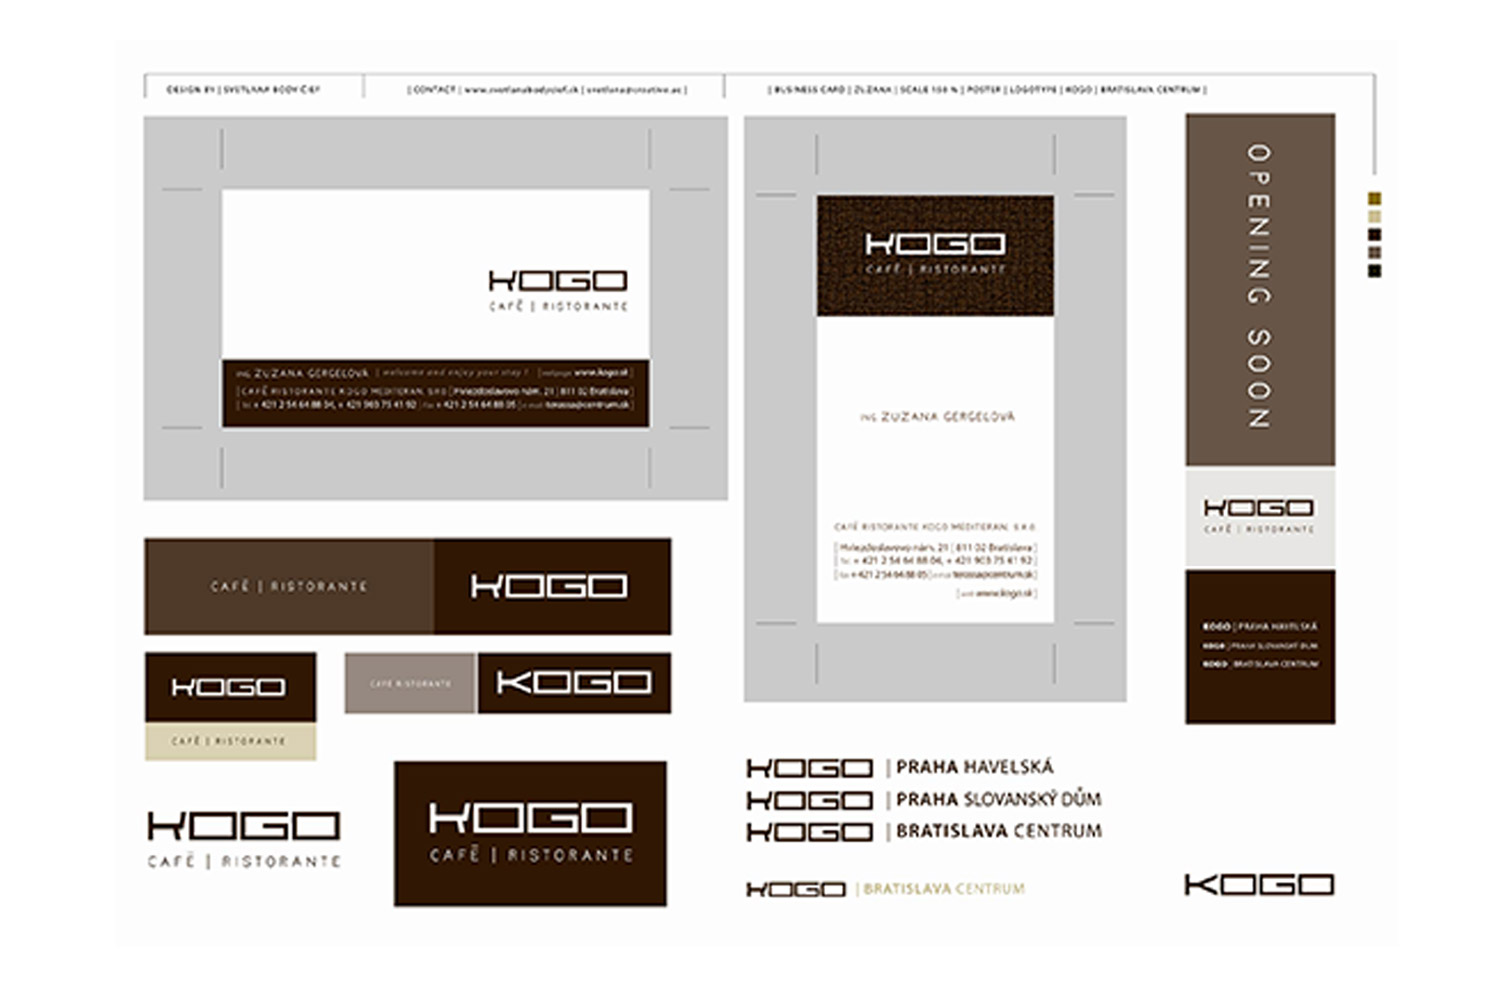 KOGO, corporate identity image